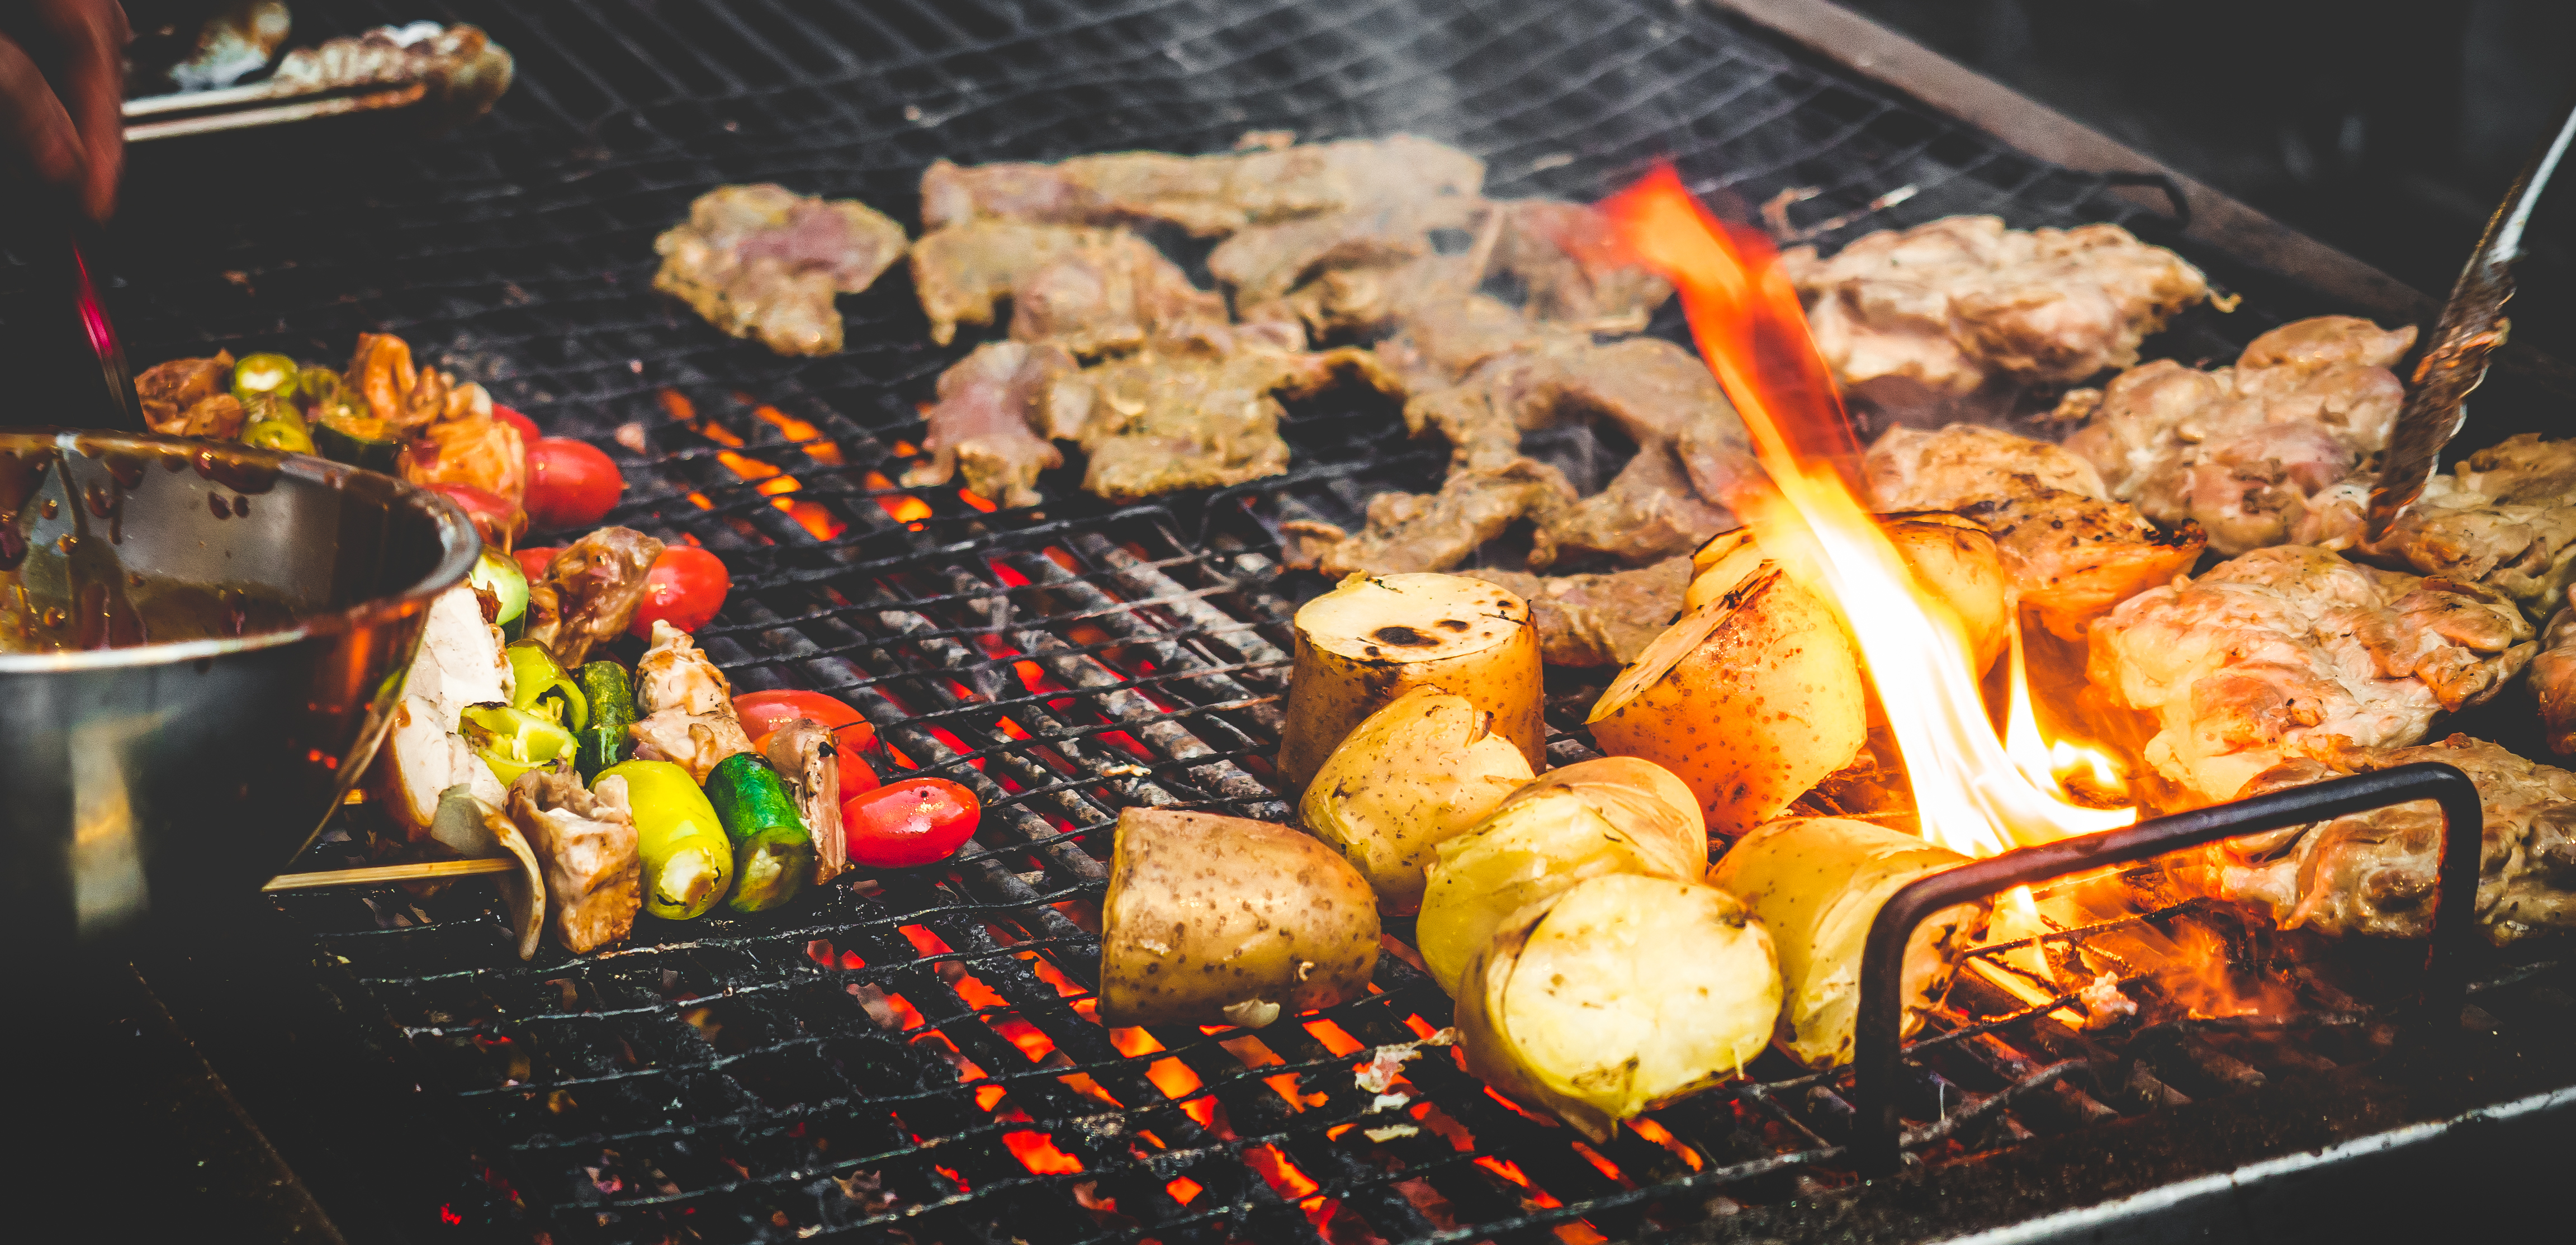 Weber Grill is Not Heating Up | Home Guides | SF Gate